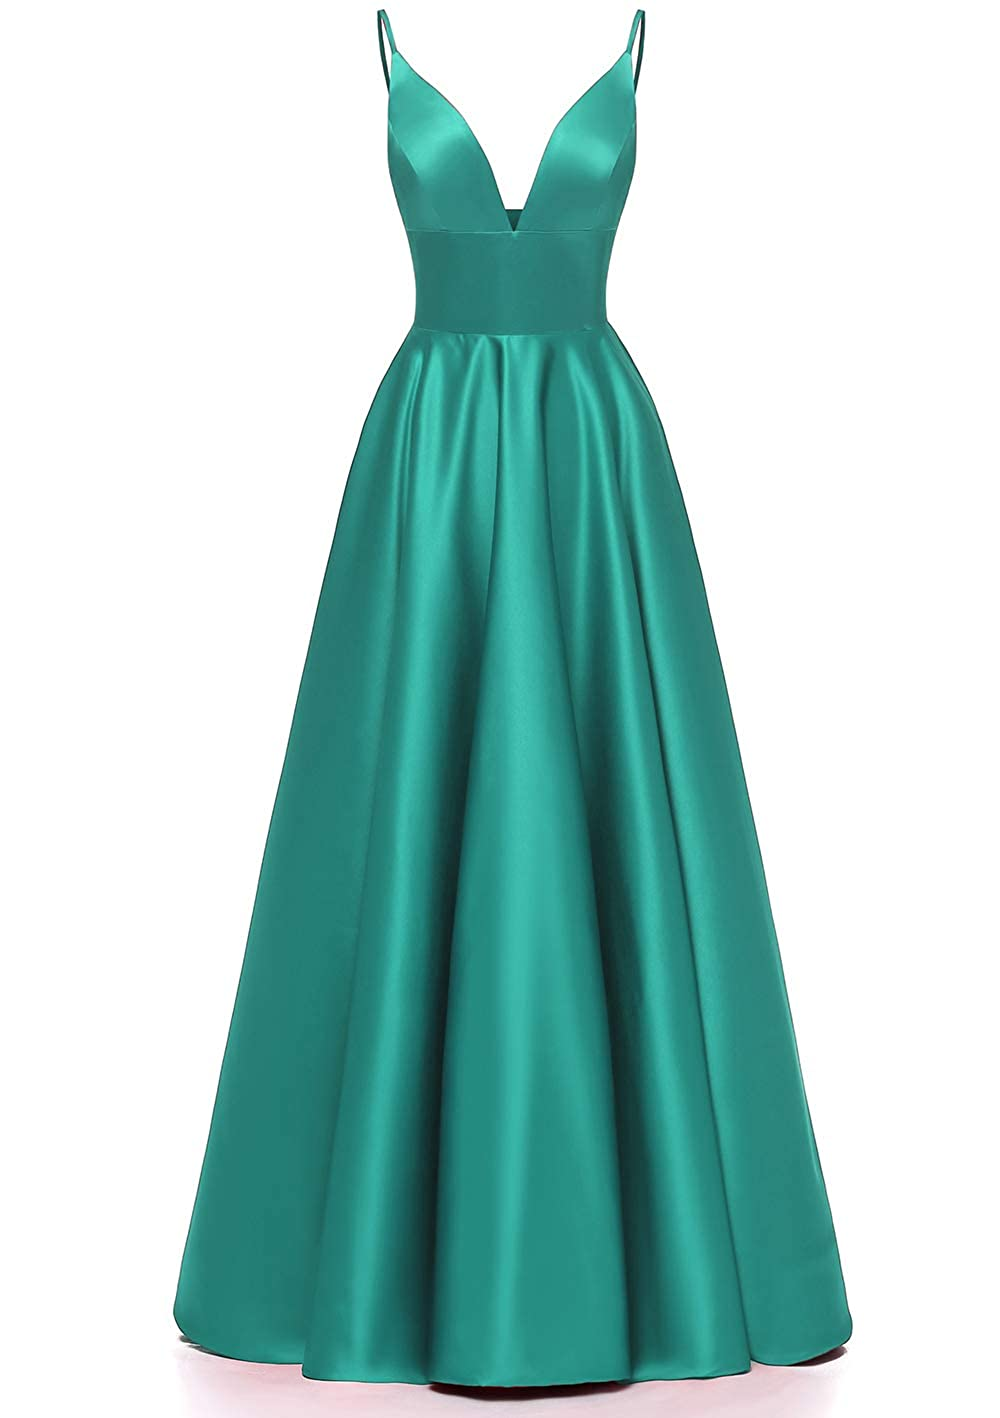 Turquoise JiusTan Sexy V Neck Prom Dresses Spaghetti Strap Satin Long Evening Dresses Party Gowns for Women with Pockets 2019